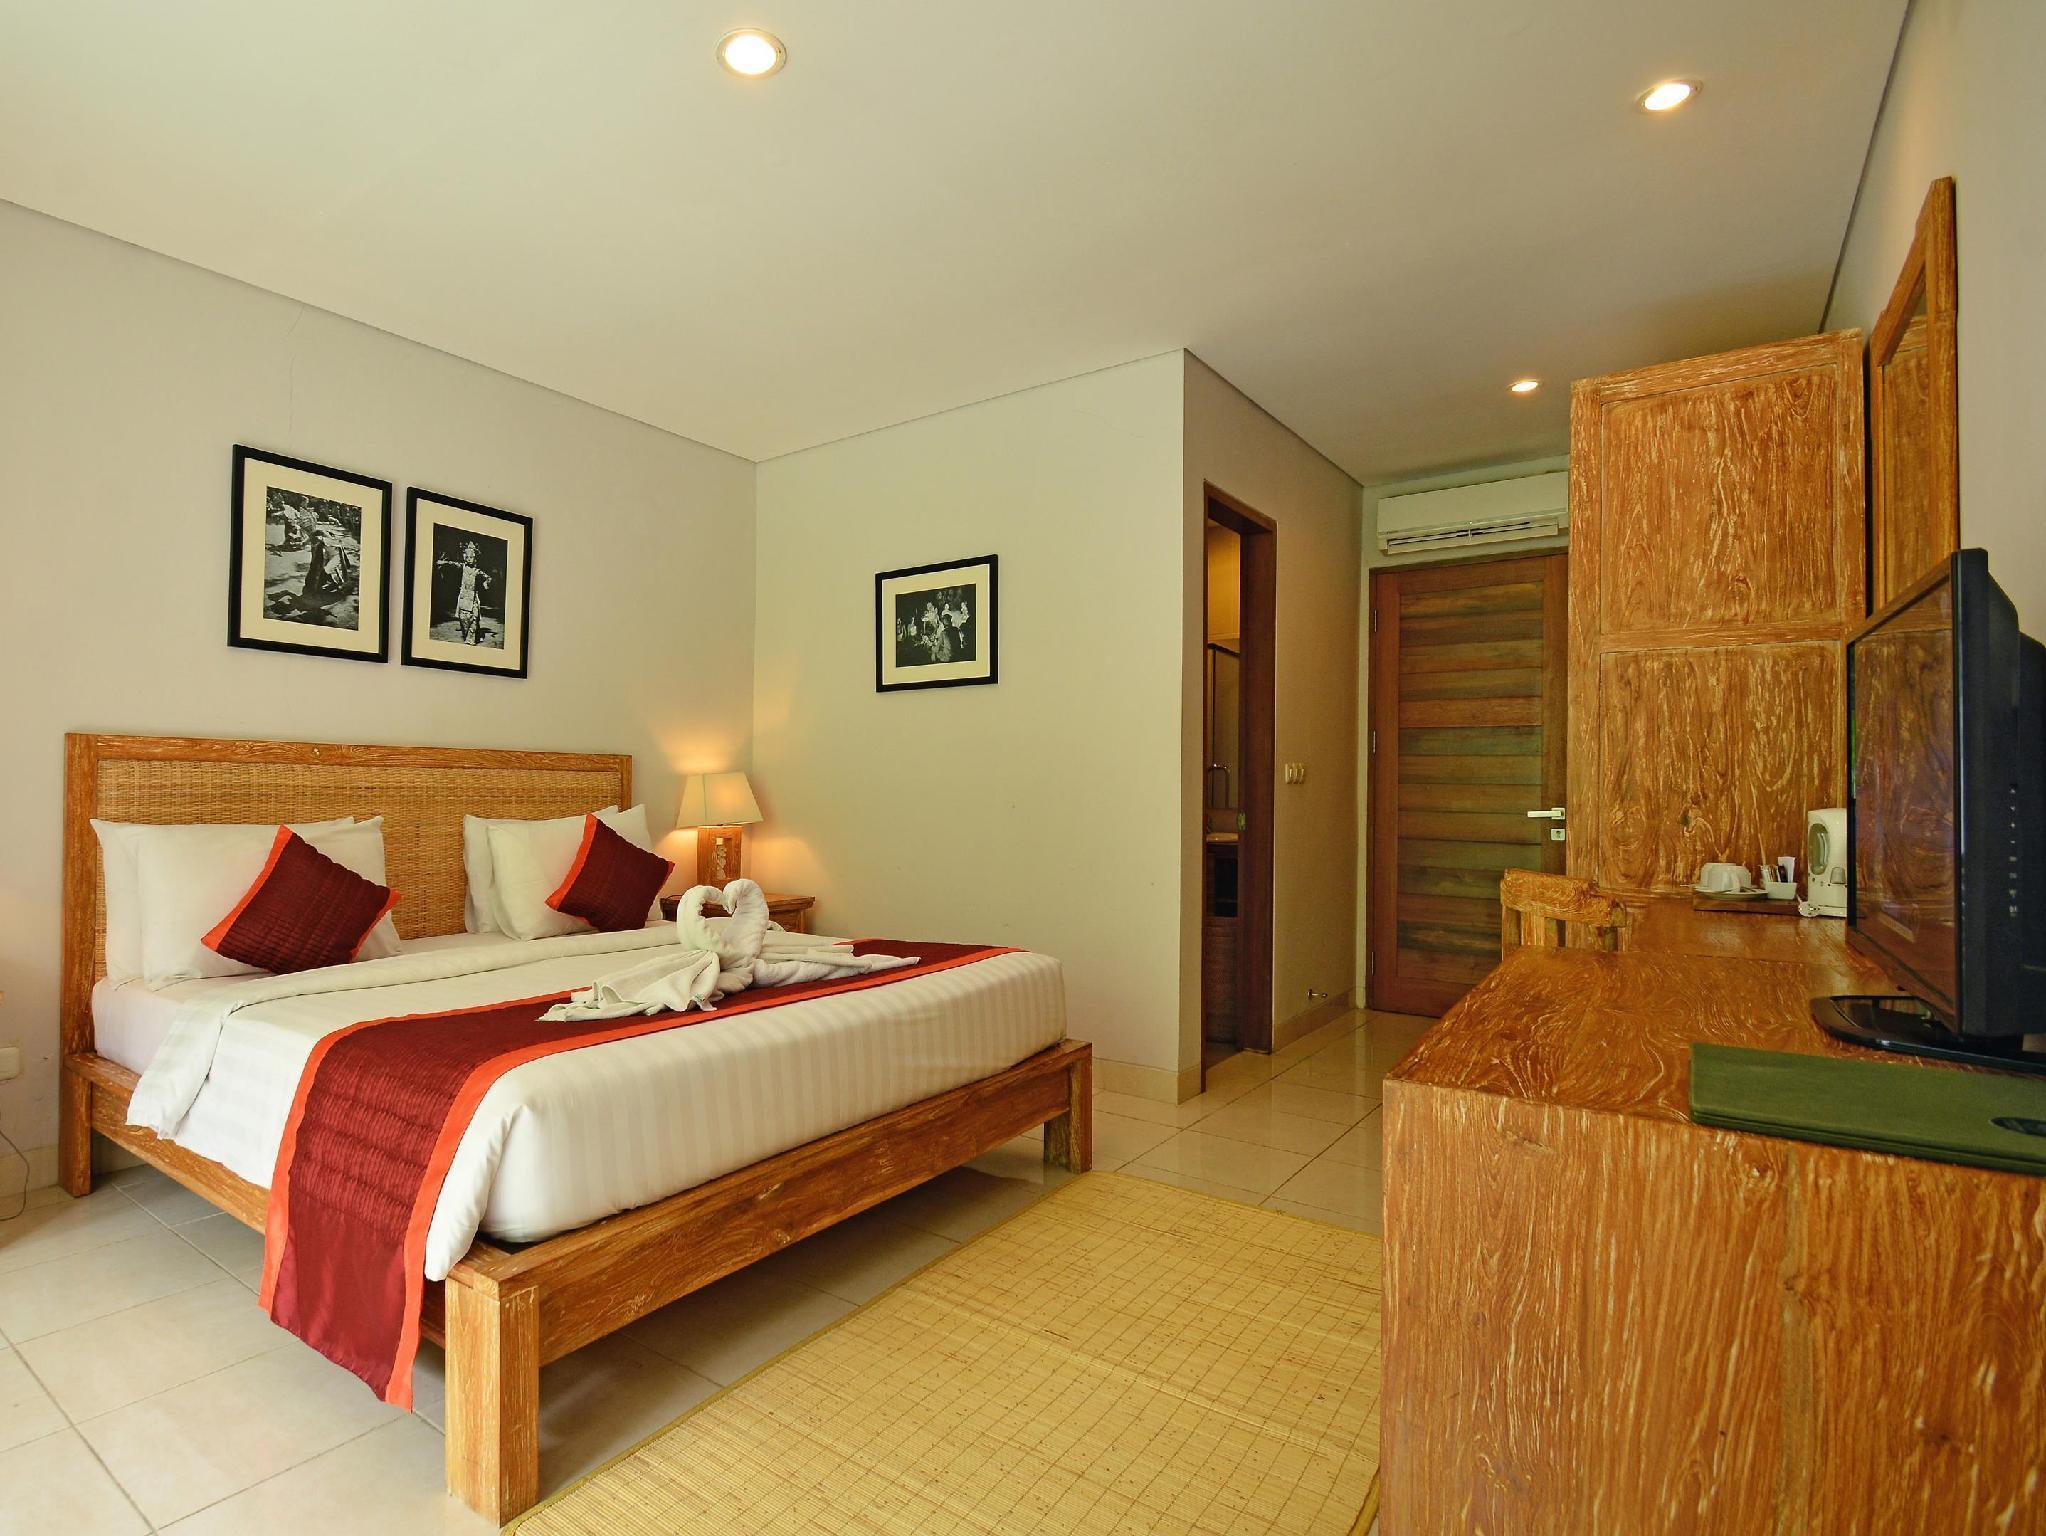 Suite Lembah (Valley Suite)